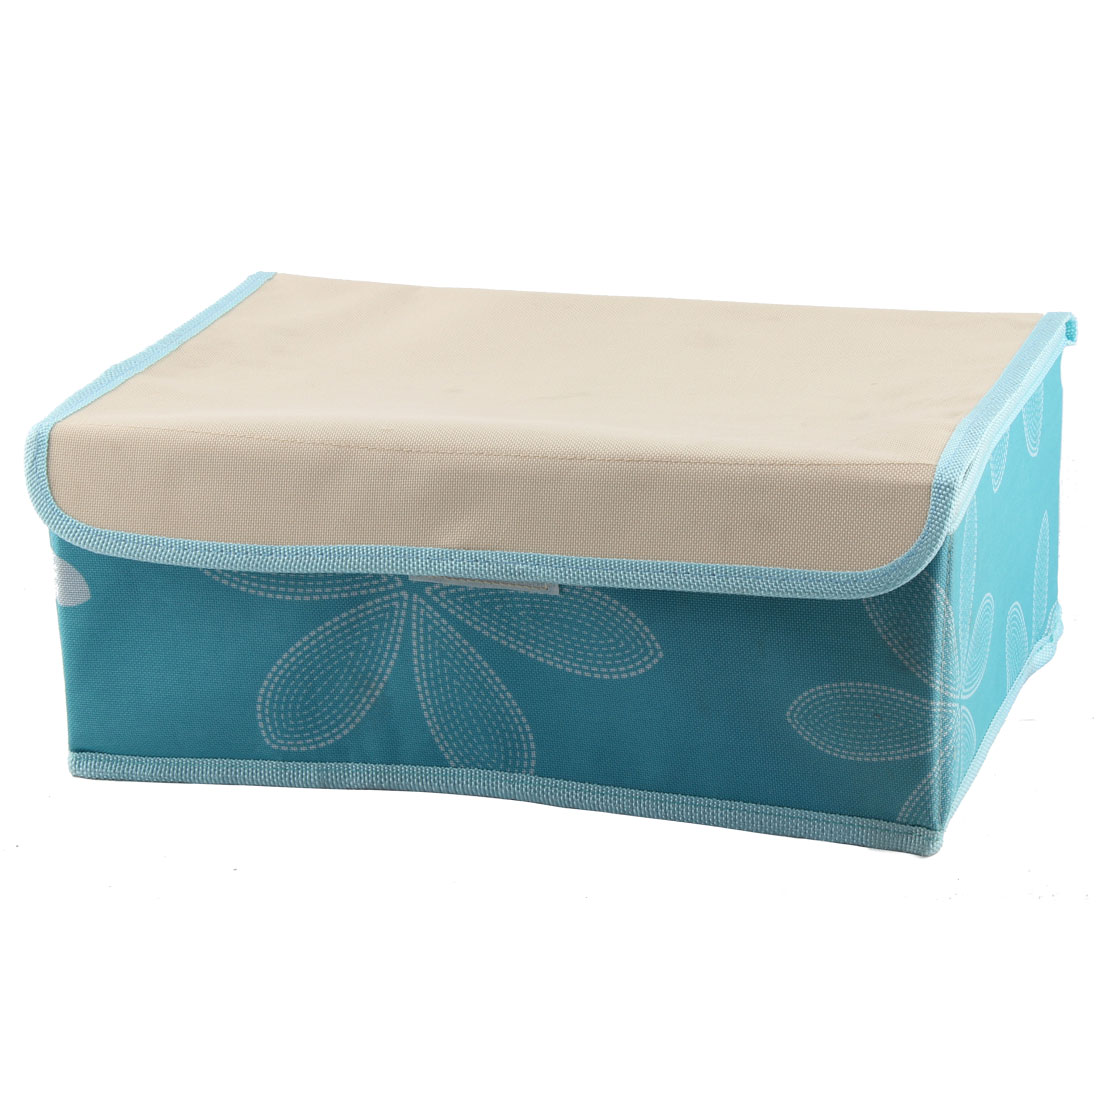 Bra Underwear Floral Pattern 8 Compartments Foldable Storage Box Sky Blue Beige